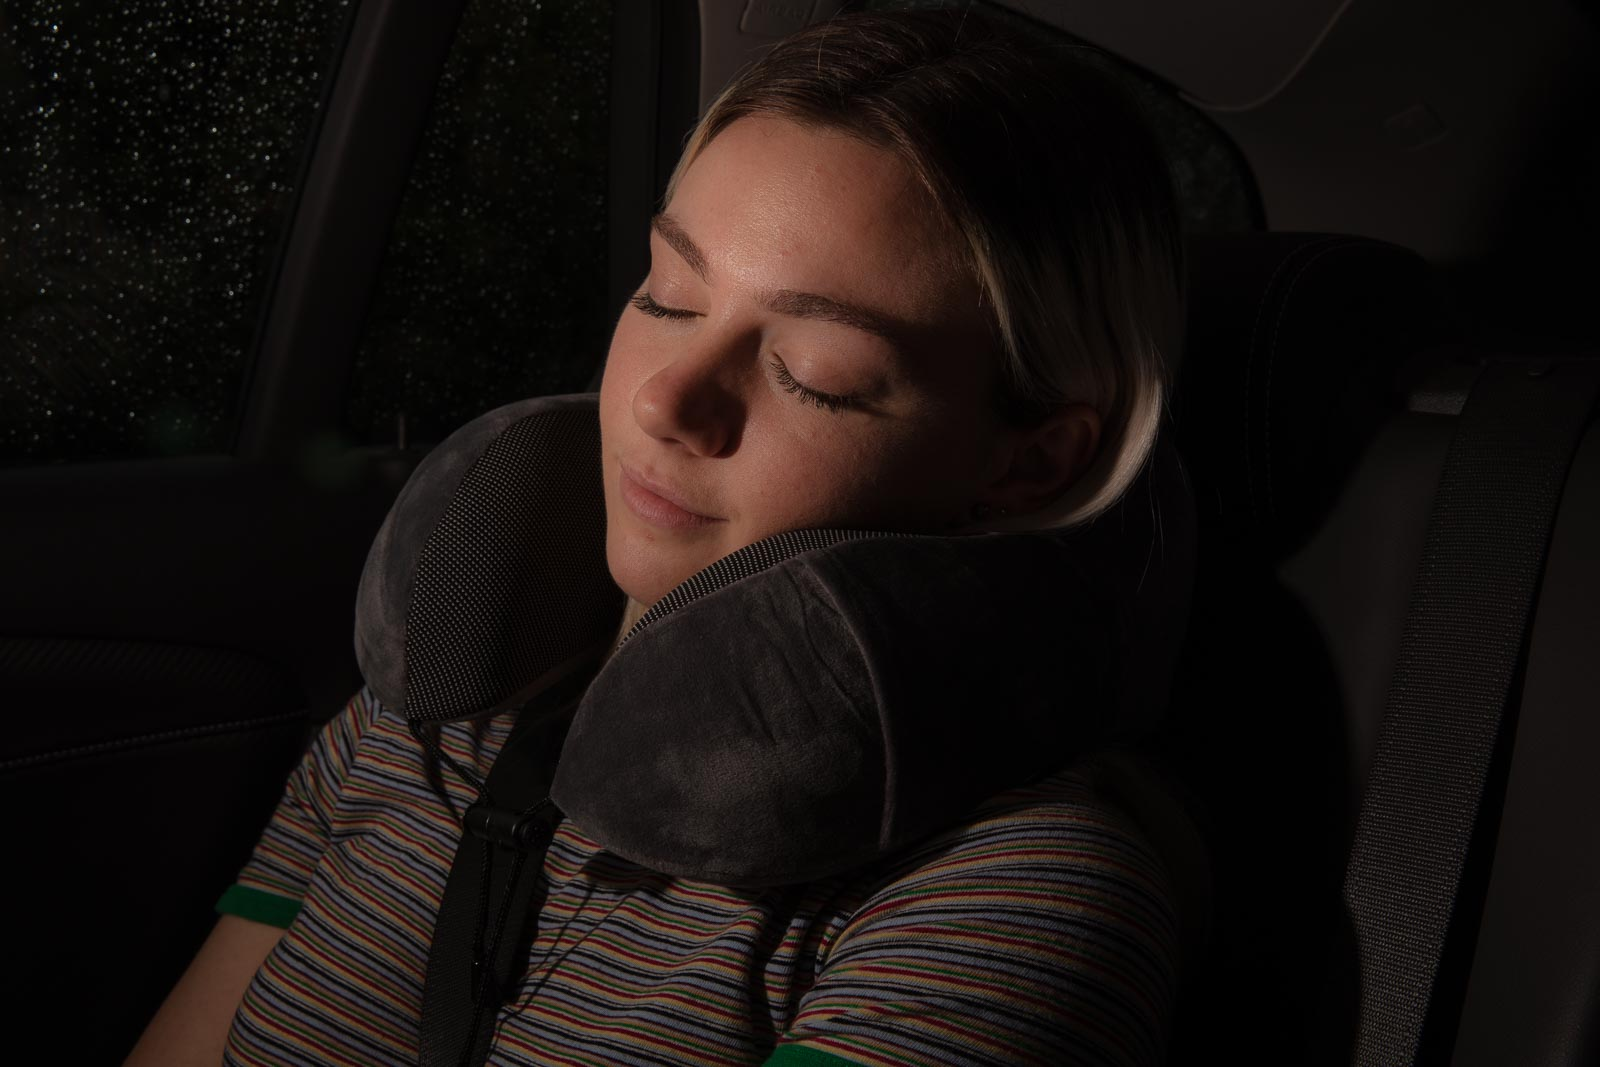 Jera travel pillow advertising photo of girl sleeping in car during night - Sample Amazon Product photography.jpg